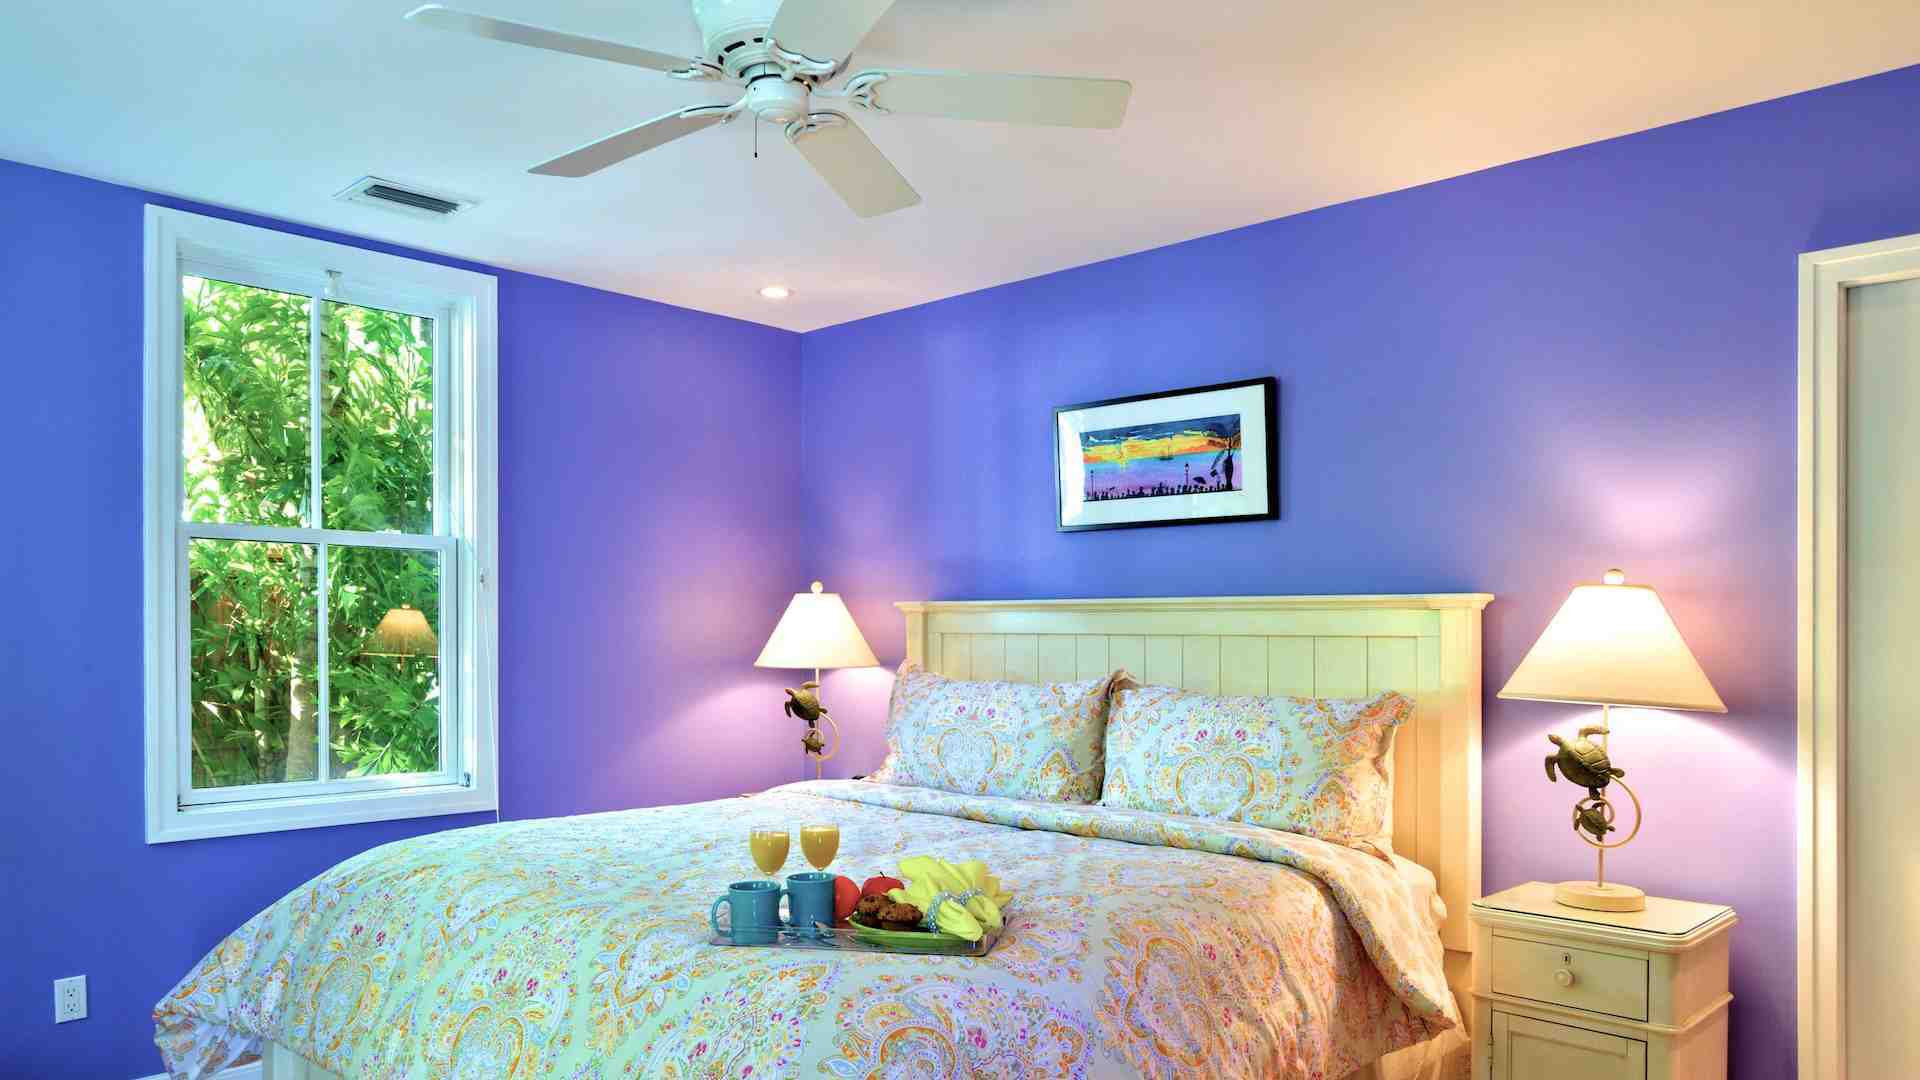 The master bedroom is on the first floor, with a king bed and overhead fan...